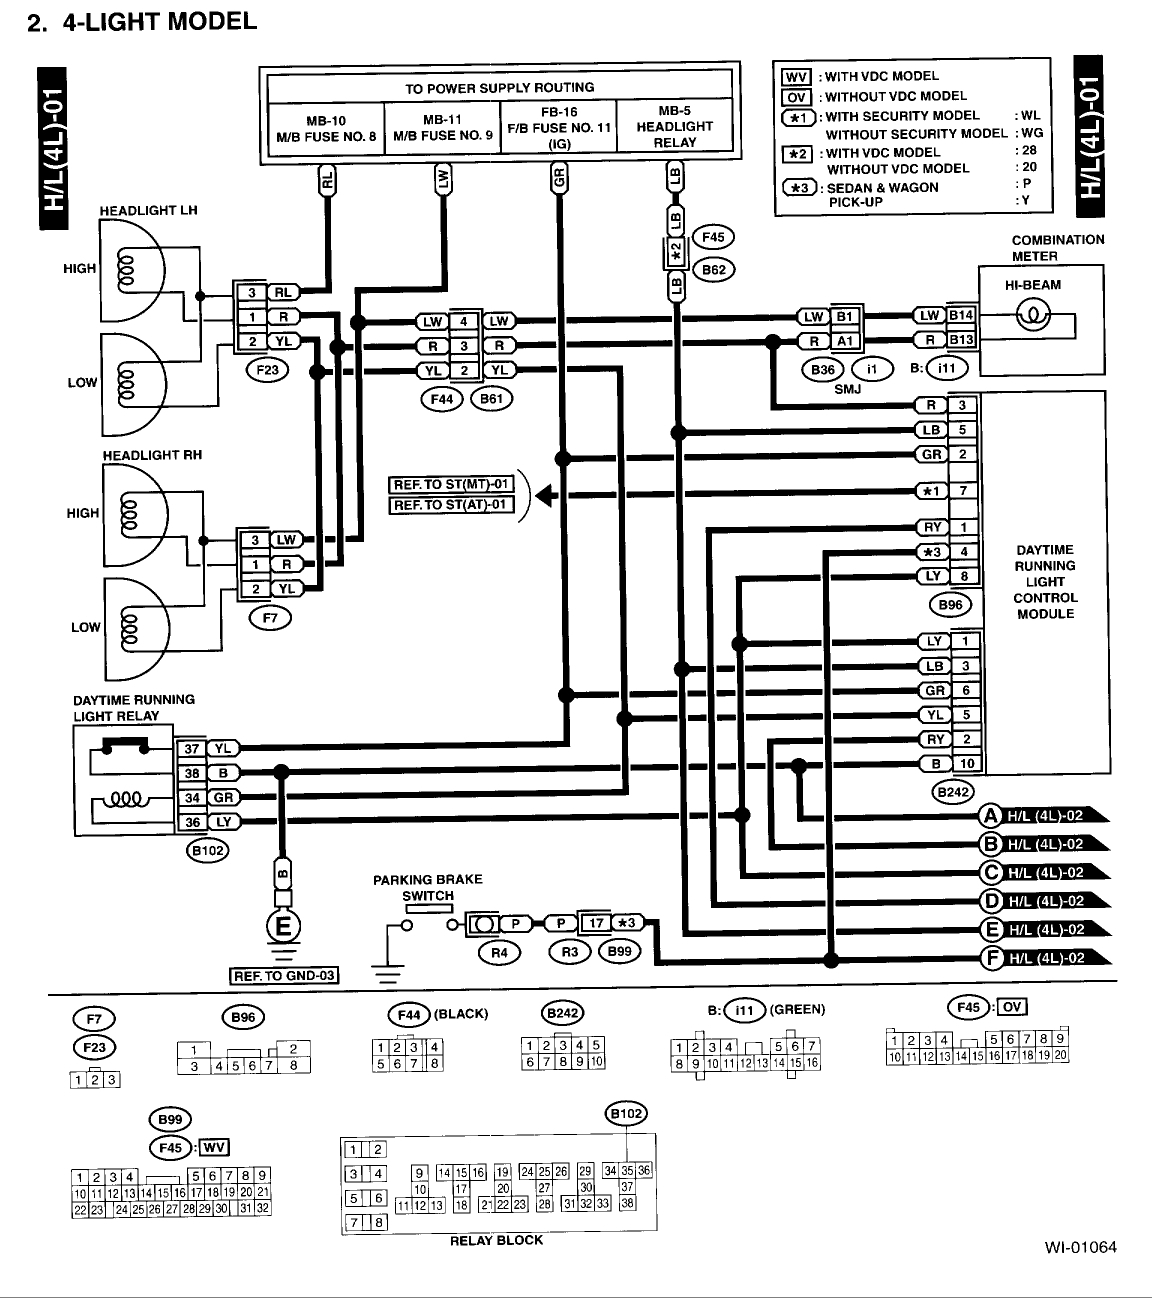 Subaru Seat Wiring Harness Diagram - Wiring Diagram M2 on